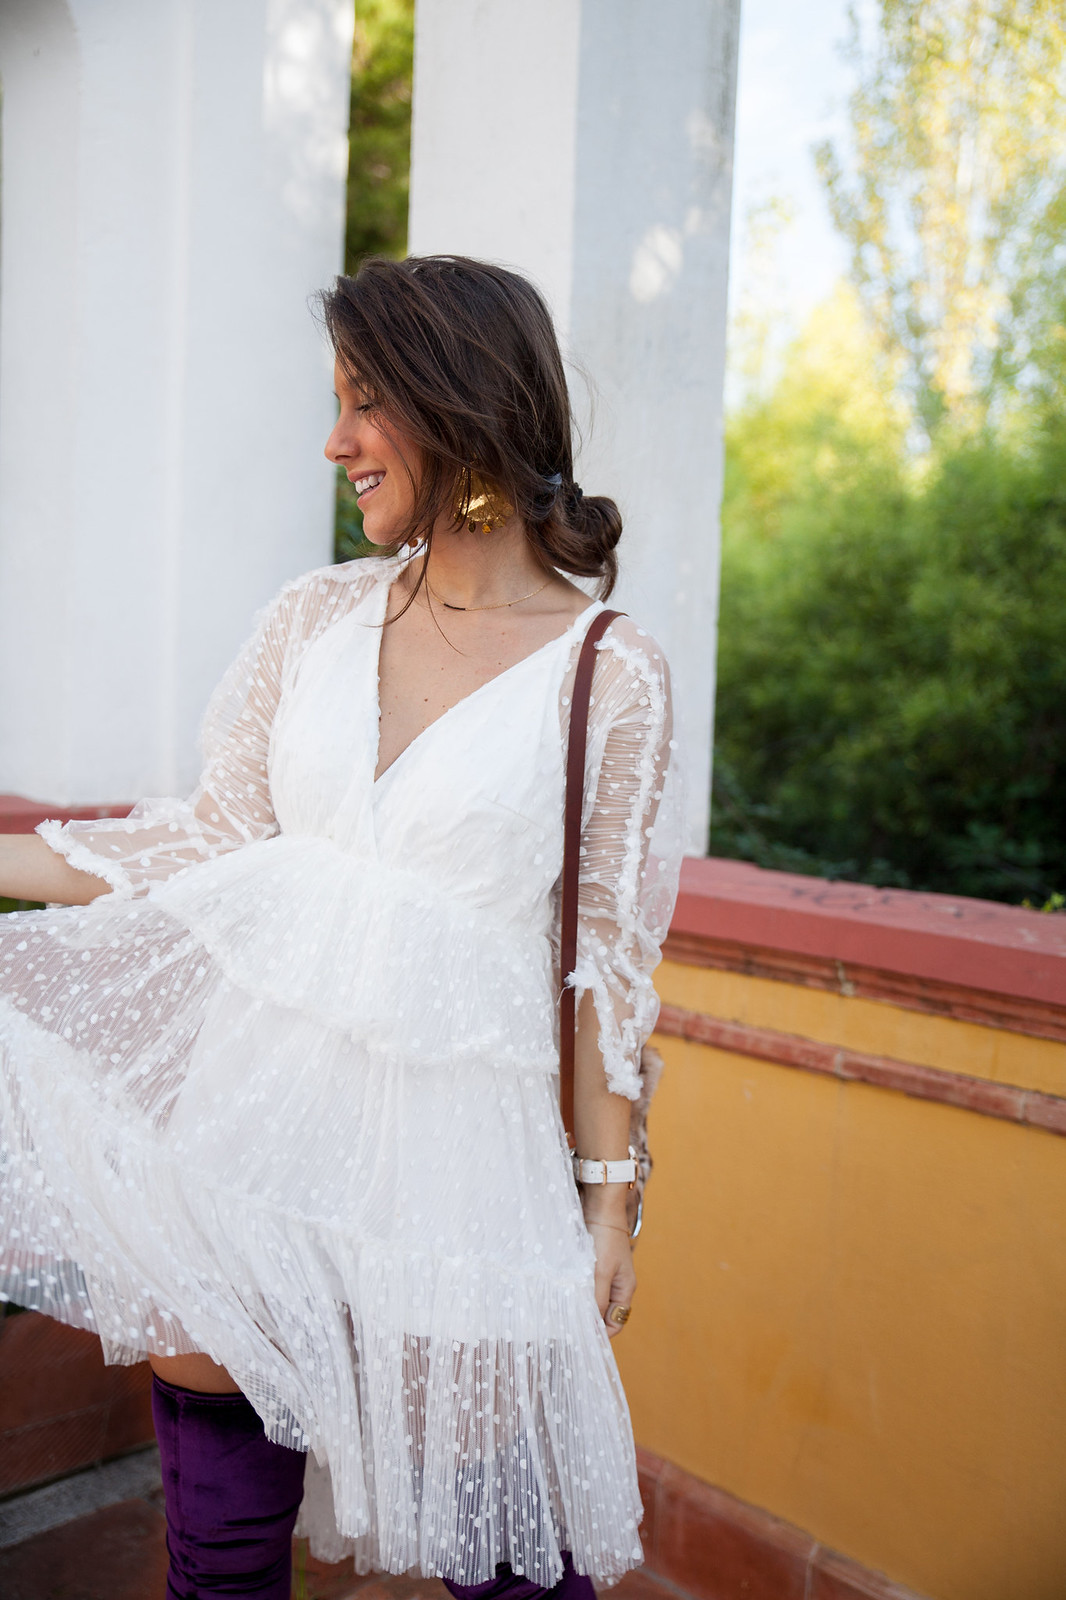 05_DANITY_BOHO_WHITE_DRESS_THEGUESTGIRL_AMBASSADOR_PARTY_DRESS_VESTIDOS_FIESTA_NAVIDADES_TENDENCIA